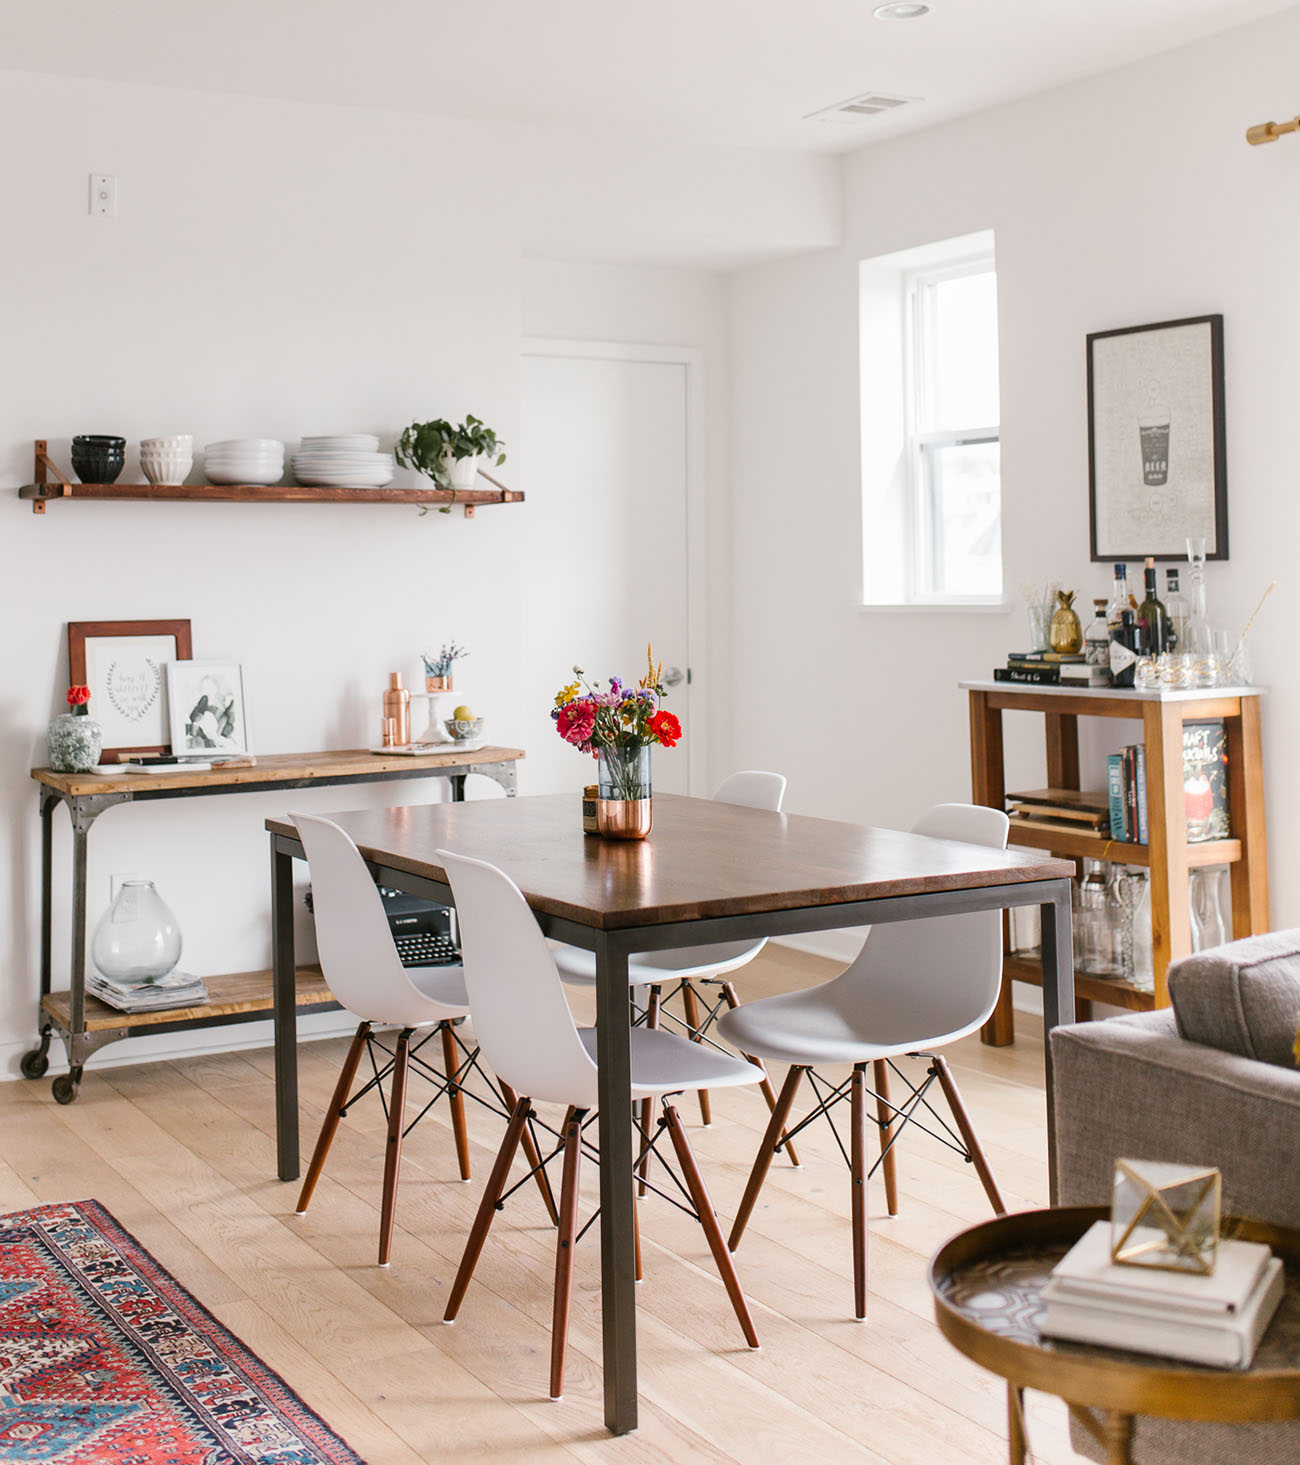 Mid Century Dining Room: Home Tour: Mid-Century Modern + Boho-Inspired Condo